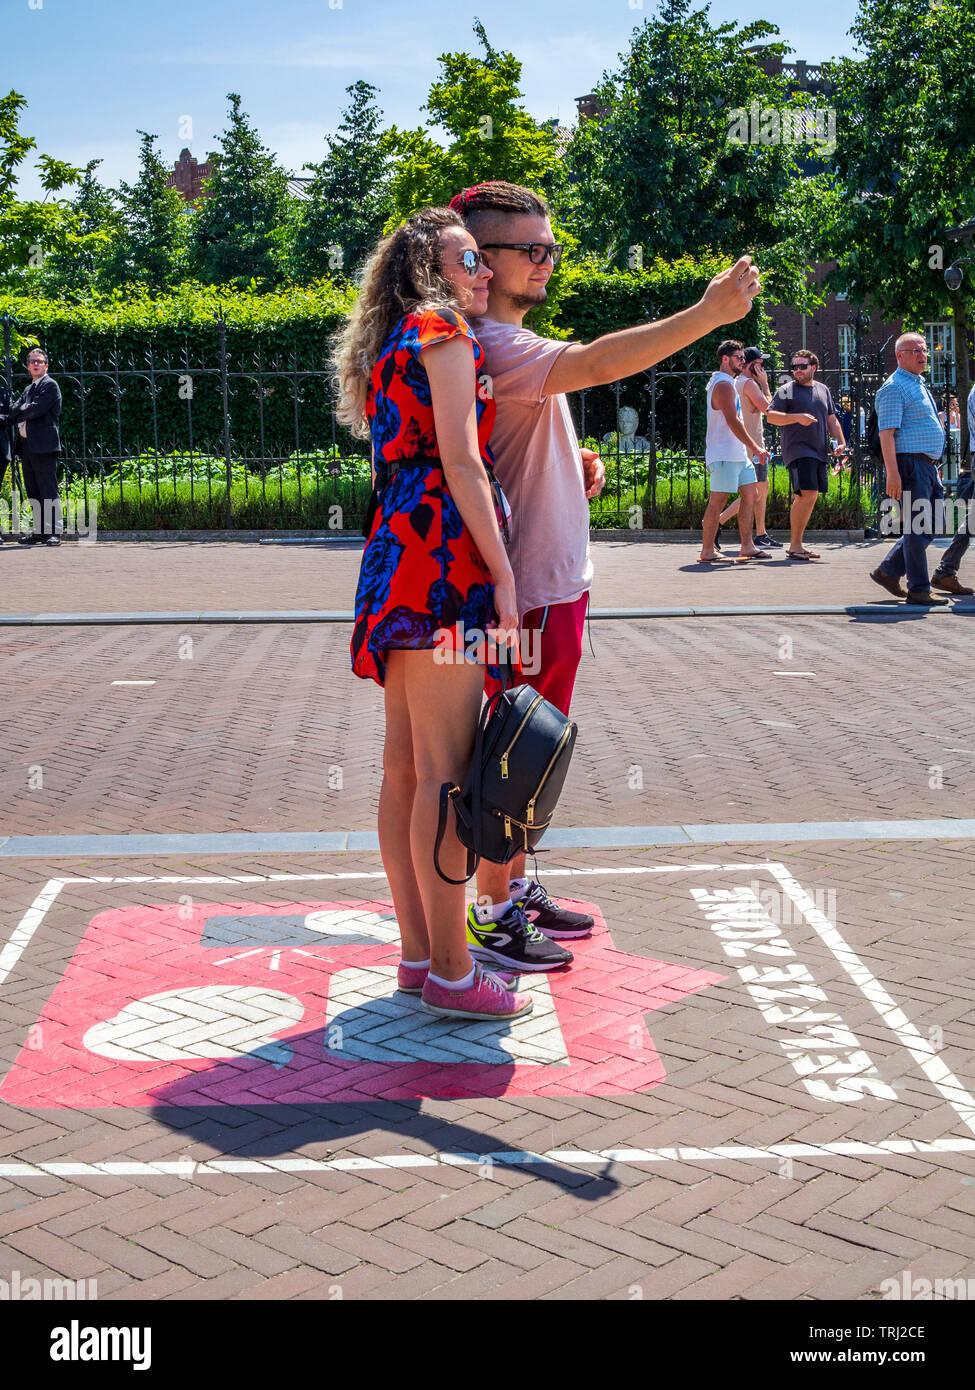 Tourists taking selfies in a designated selfie zone in front of the Rijksmuseum in Amsterdam, The Netherlands. - Stock Image